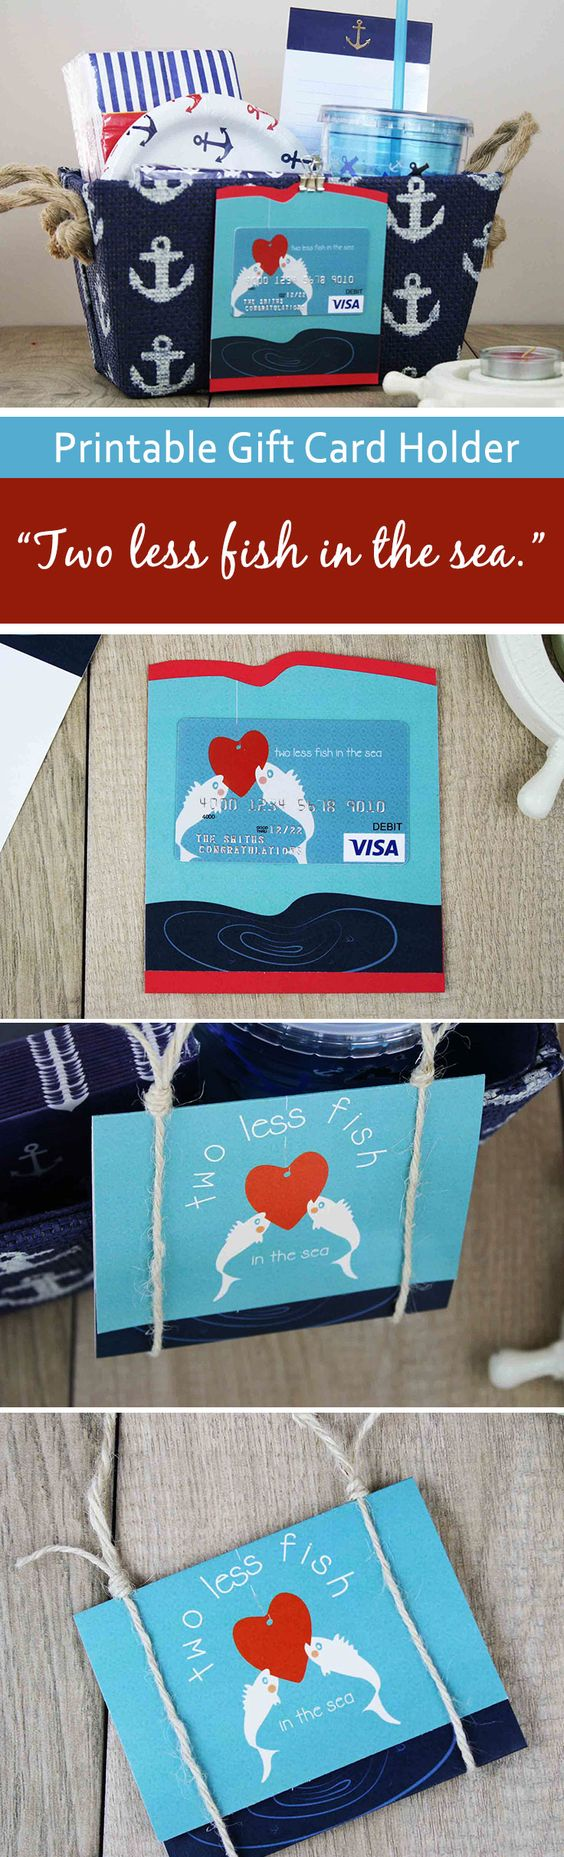 Nautical Wedding Gift Card Holder : card holders wedding gifts gift cards love is bridal shower engagement ...